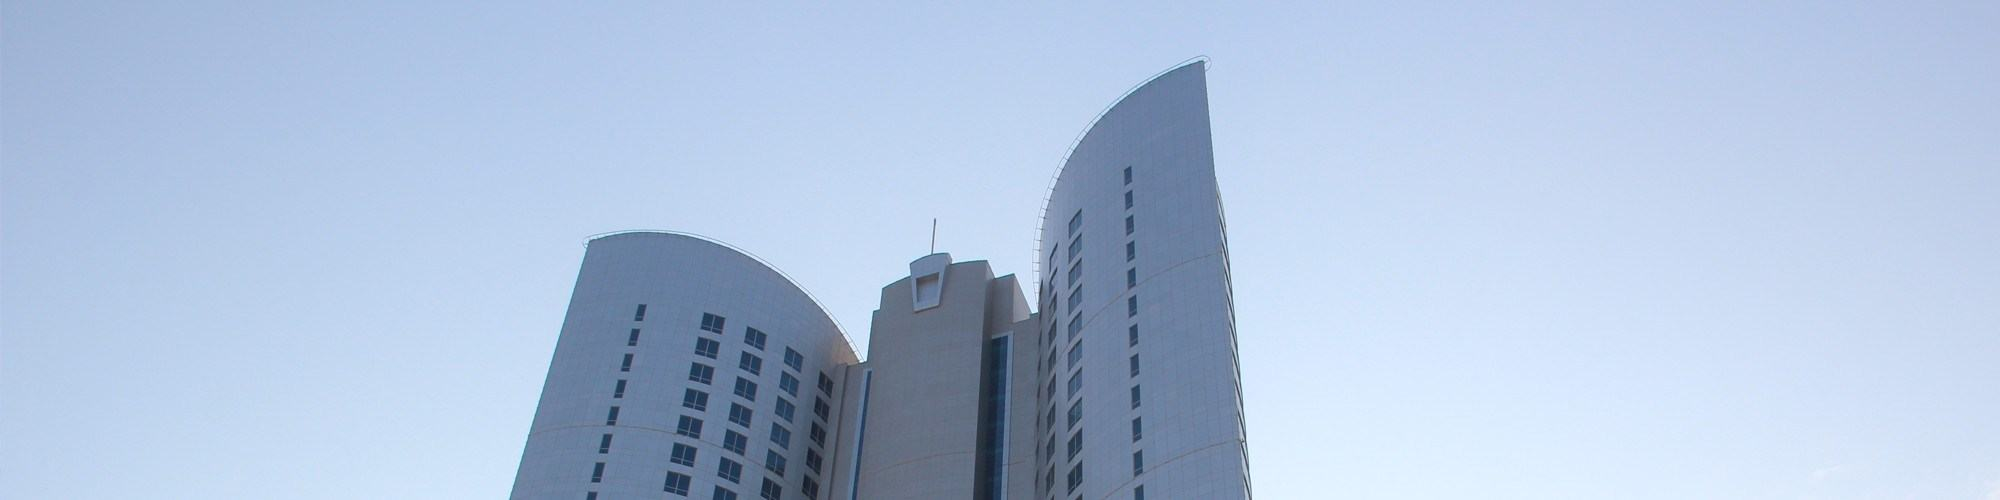 diplomatic-commercial-office-tower-bahrain-banner-1.jpg